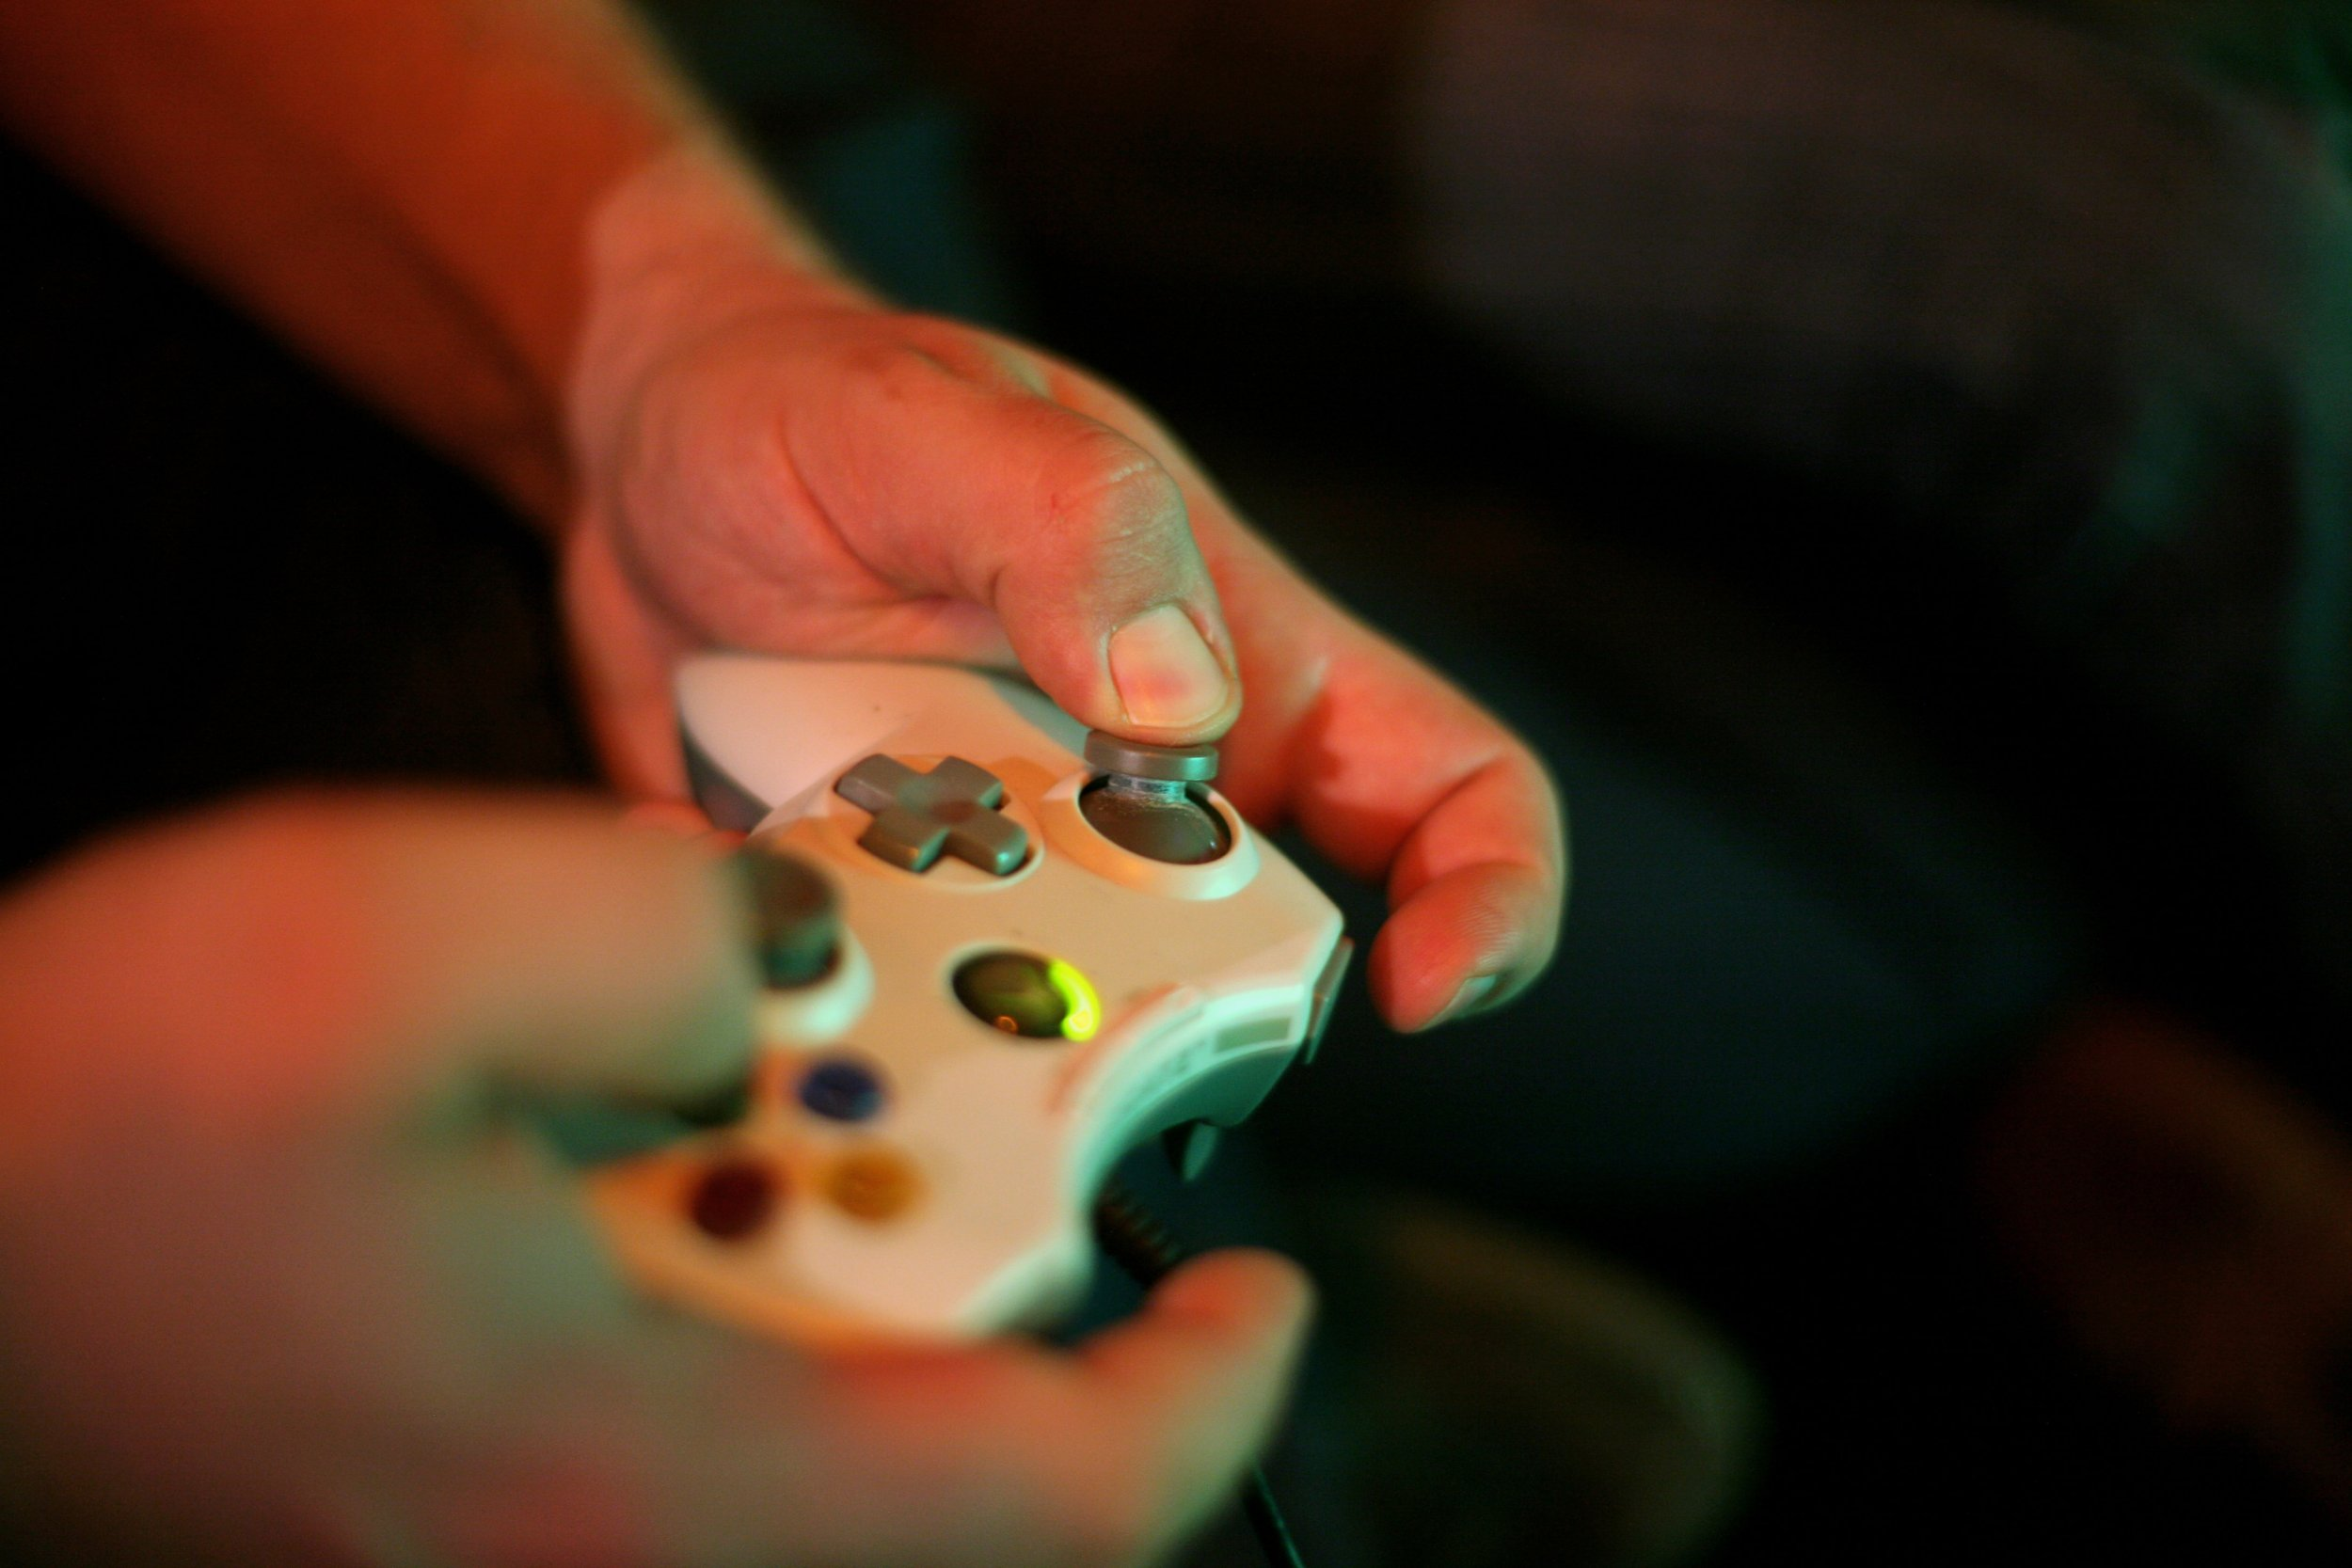 Benefits Of Gaming What Research Shows >> World Health Organization Says Video Game Addiction Is A Mental